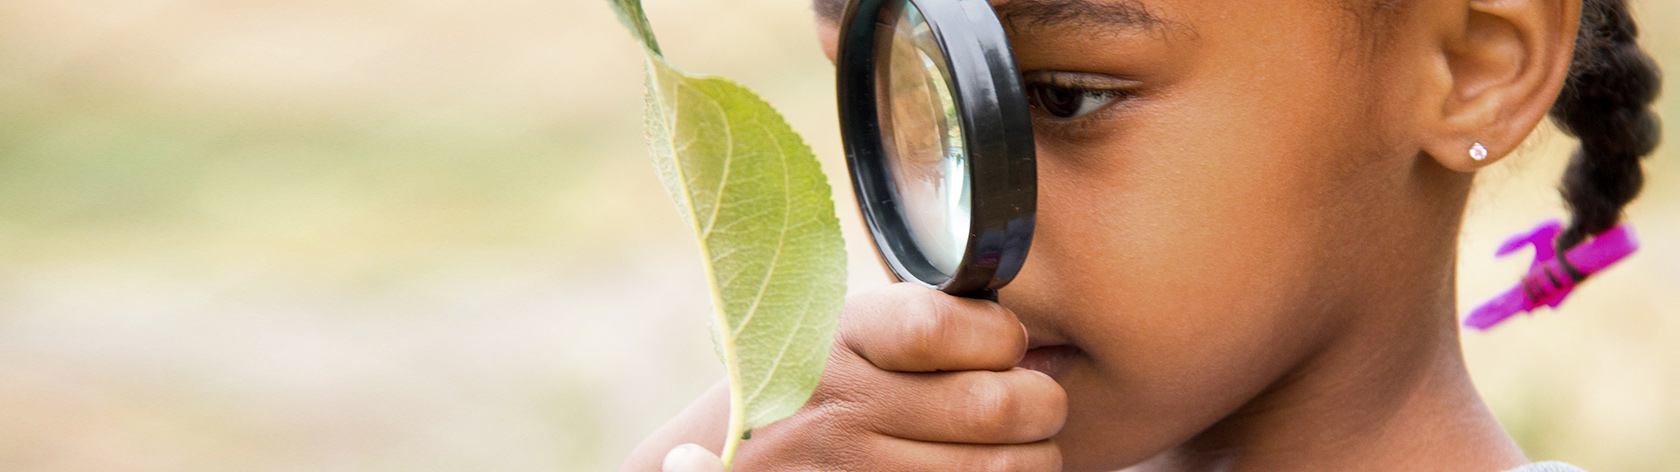 Curious child ispecting a leaf with a magnifying glass